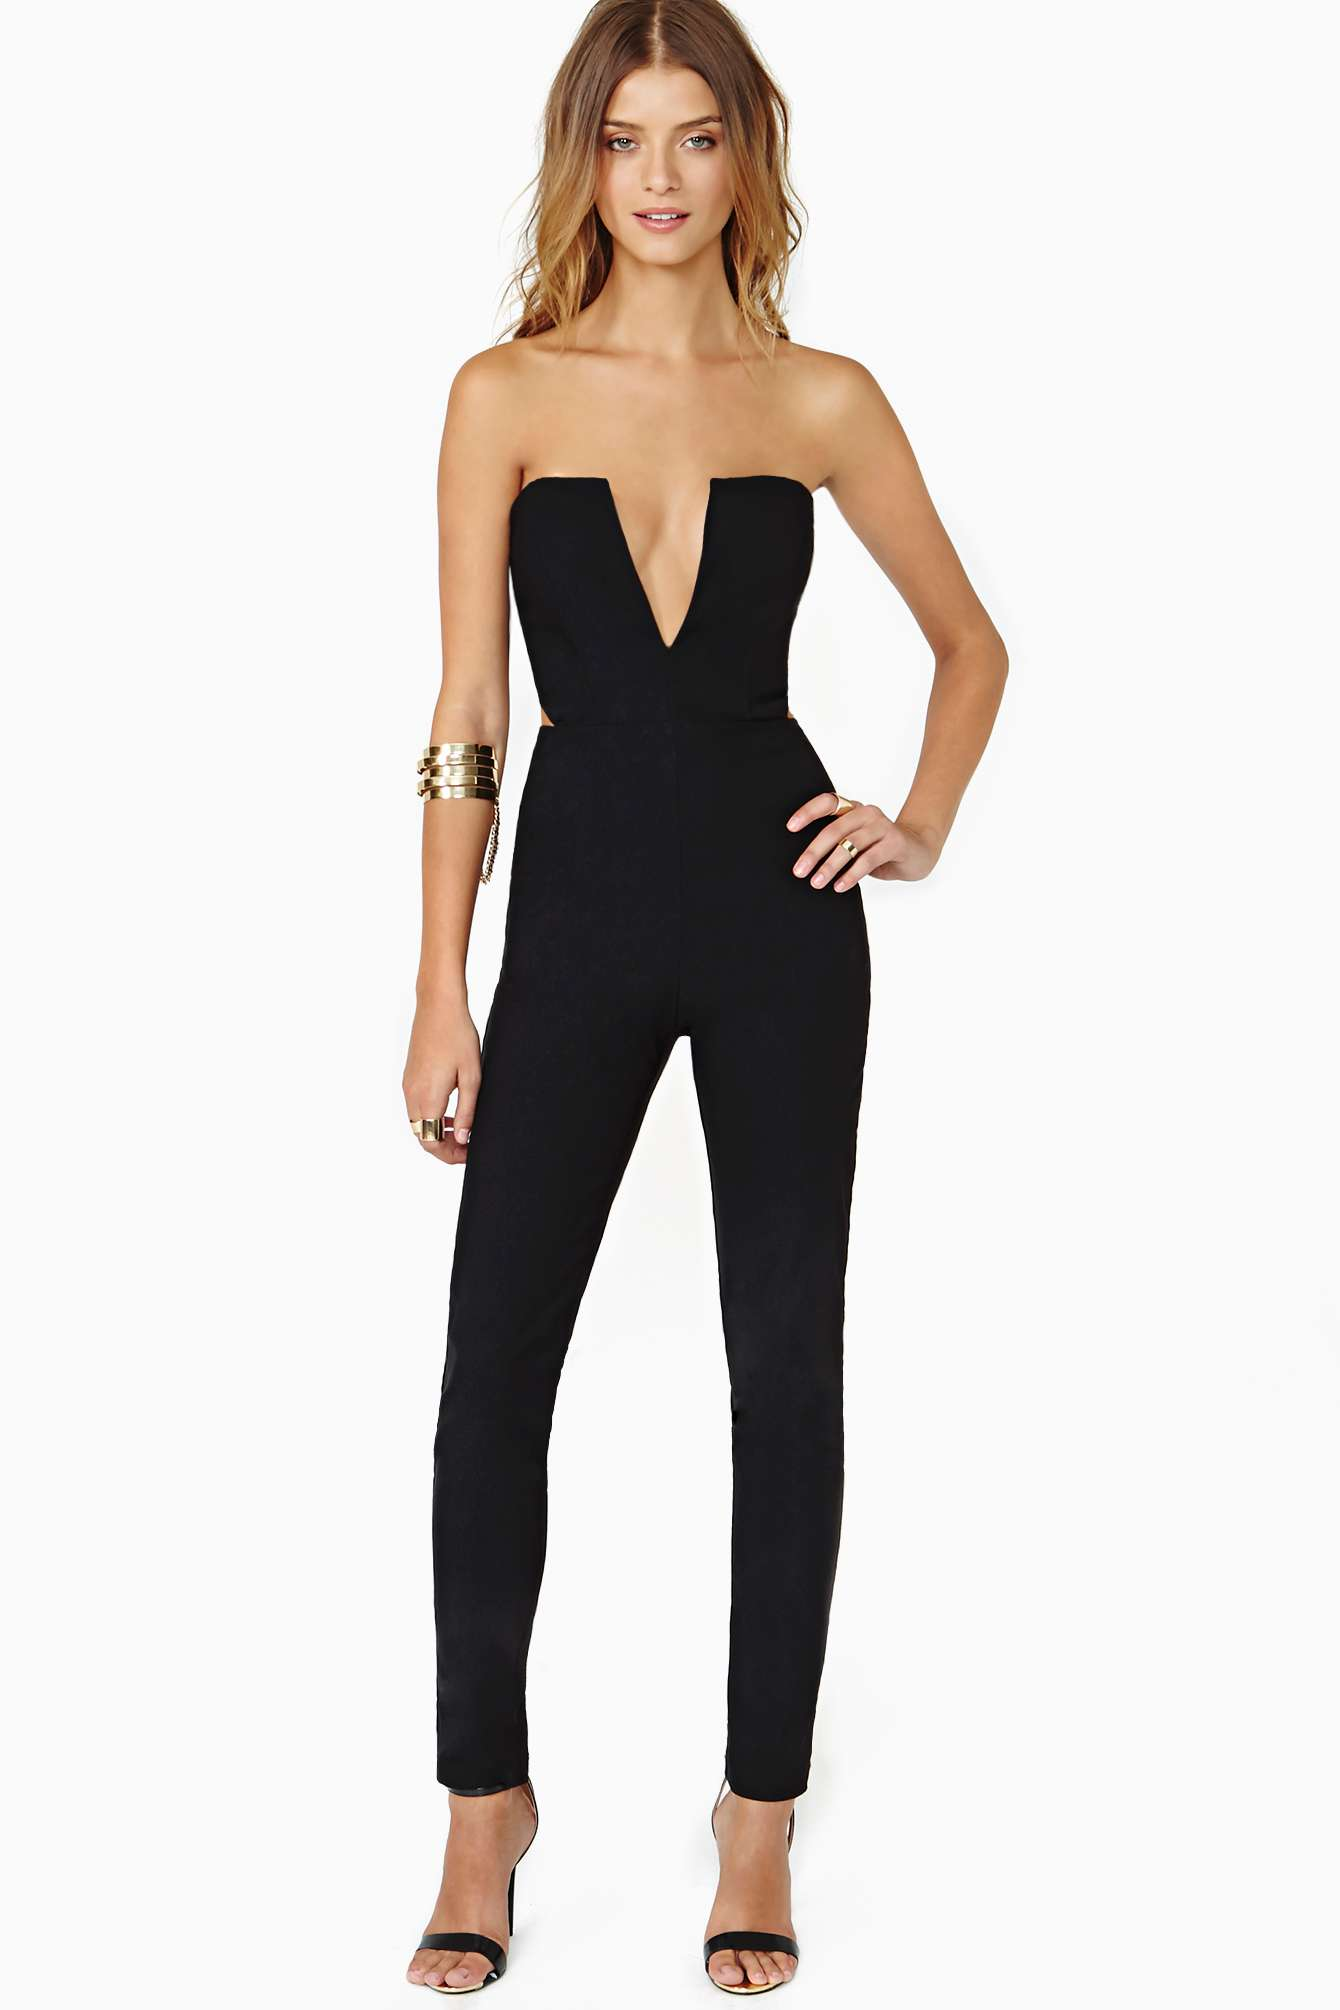 Lyst - Nasty Gal Midnight Run Jumpsuit In Black-8565